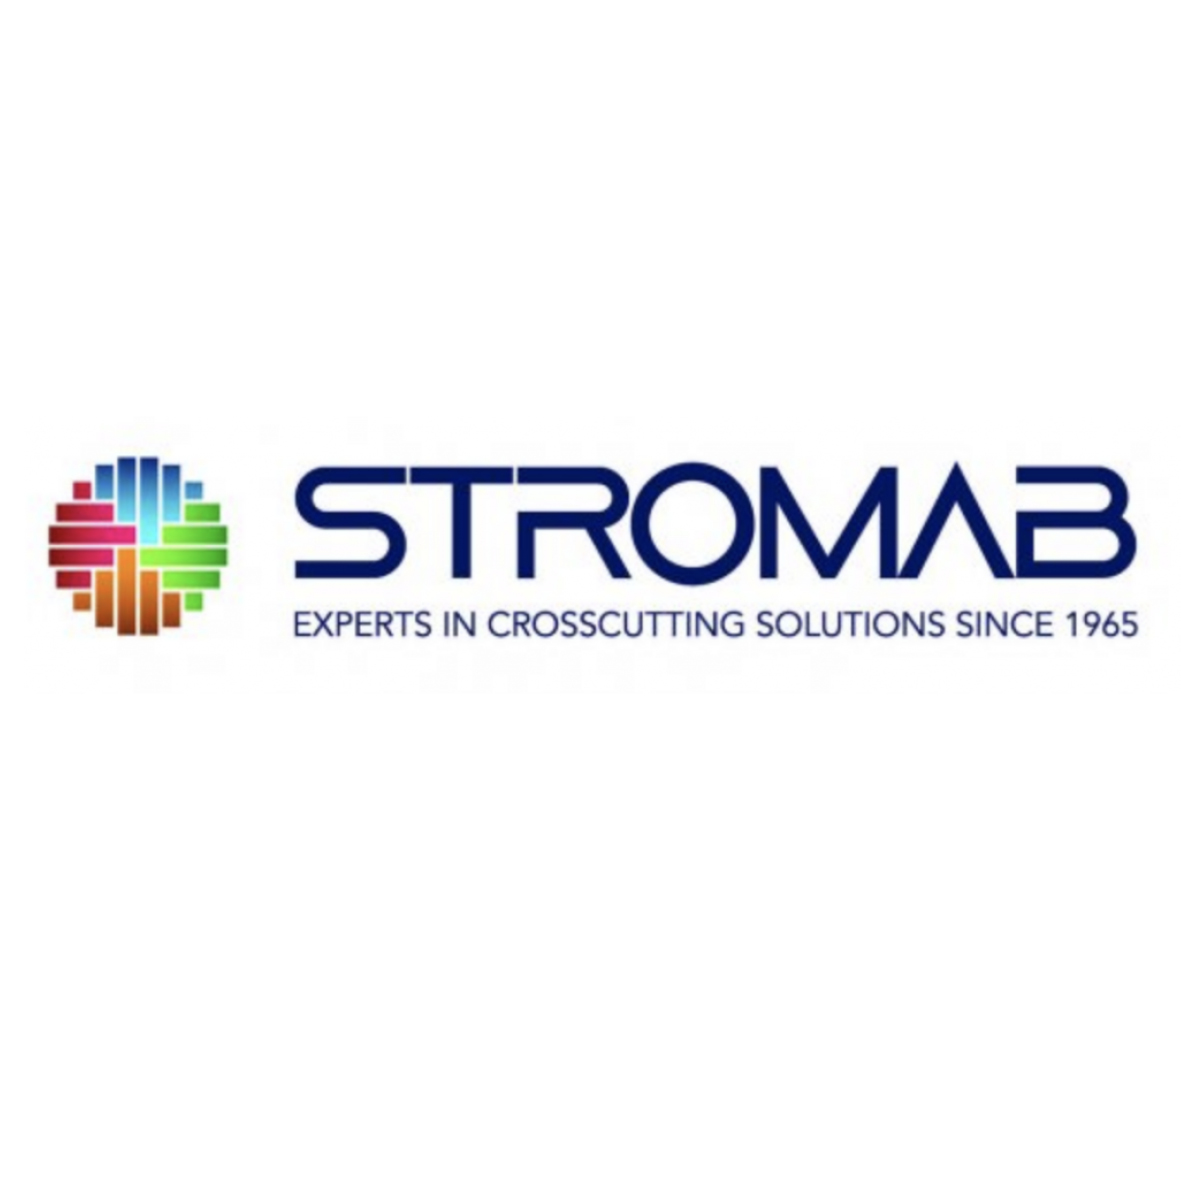 stromab experts in cross cutting solutions since 1965